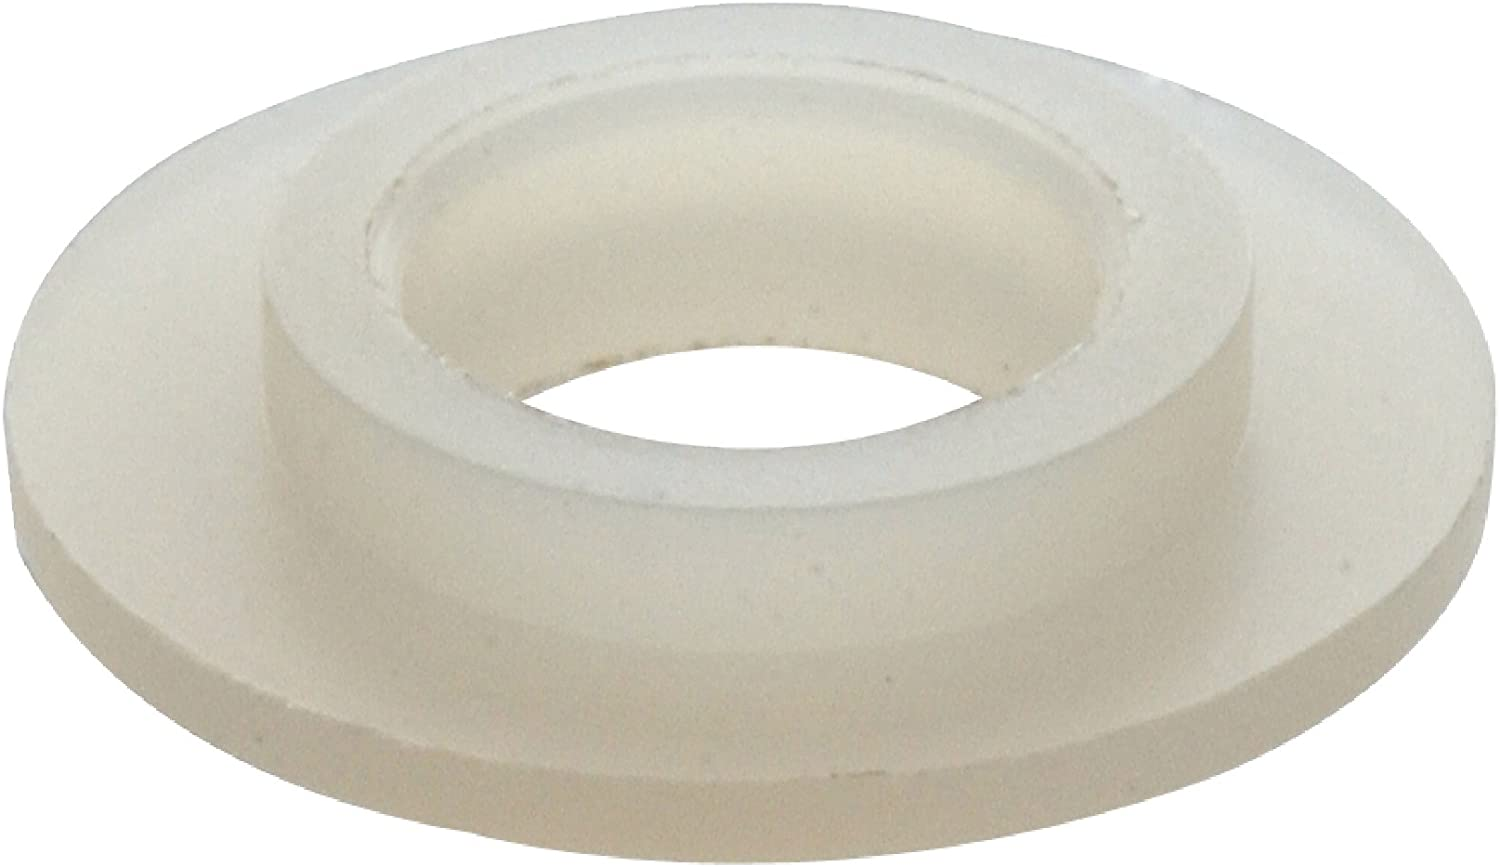 The Hillman Group 58202 0.281 x 0.122 25 All stores are sold Washer Cheap mail order sales Shoulder Nylon